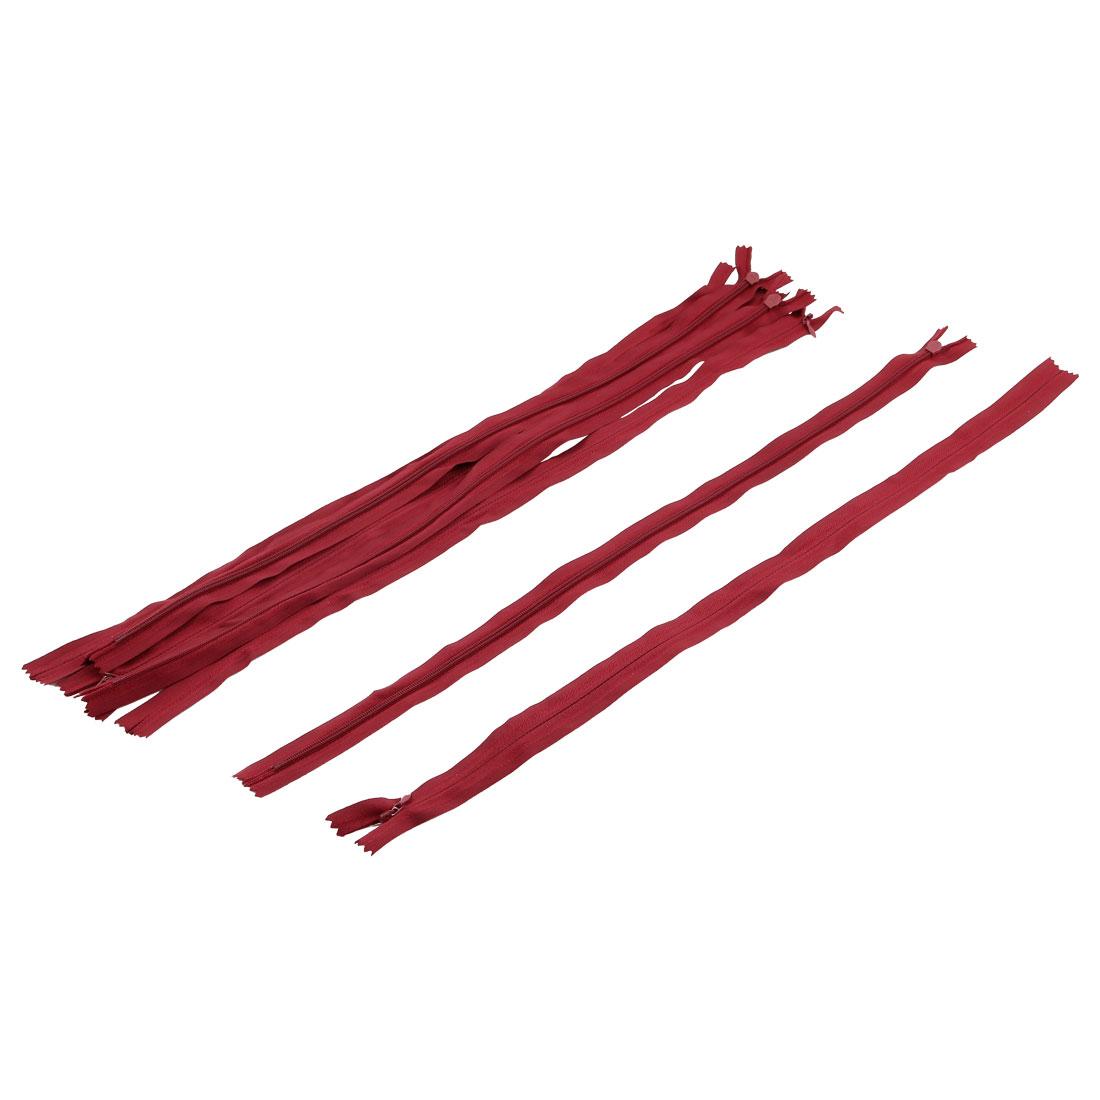 Tailor Nylon Conceal Invisible Zippers Sewing Tool Red 50cm Length 7PCS